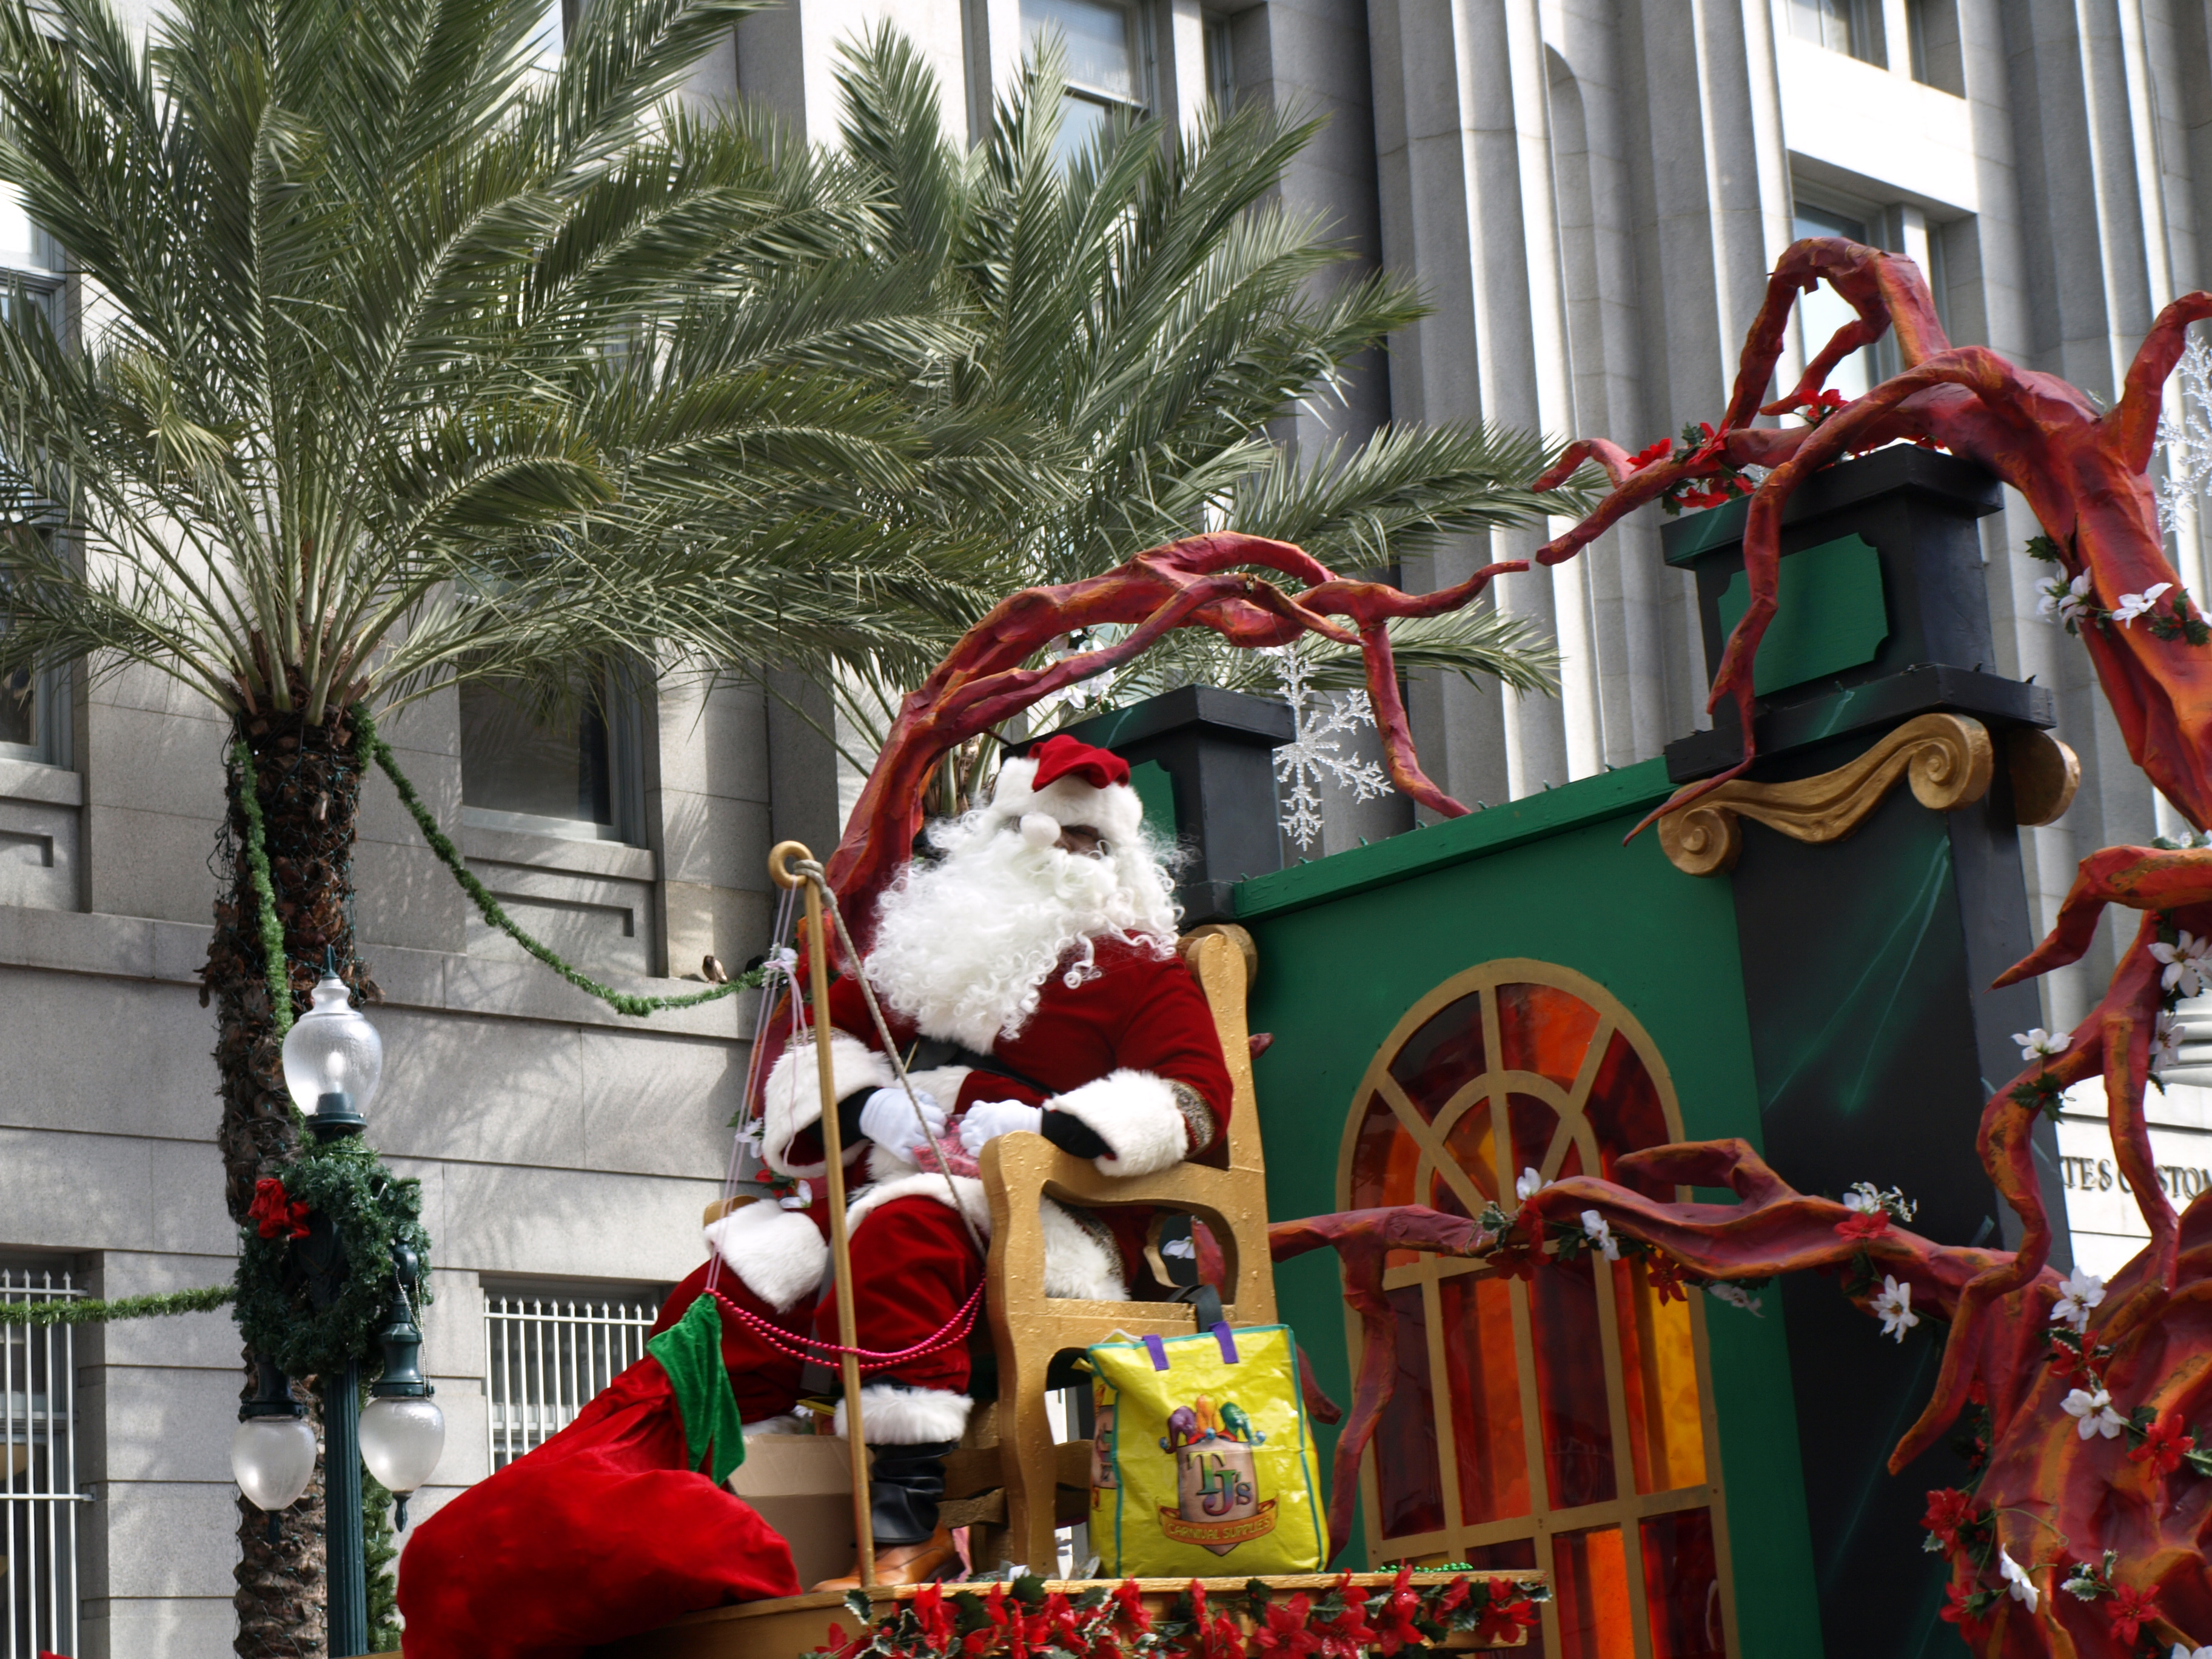 File:New Orleans Christmas Parade.jpg - Wikimedia Commons